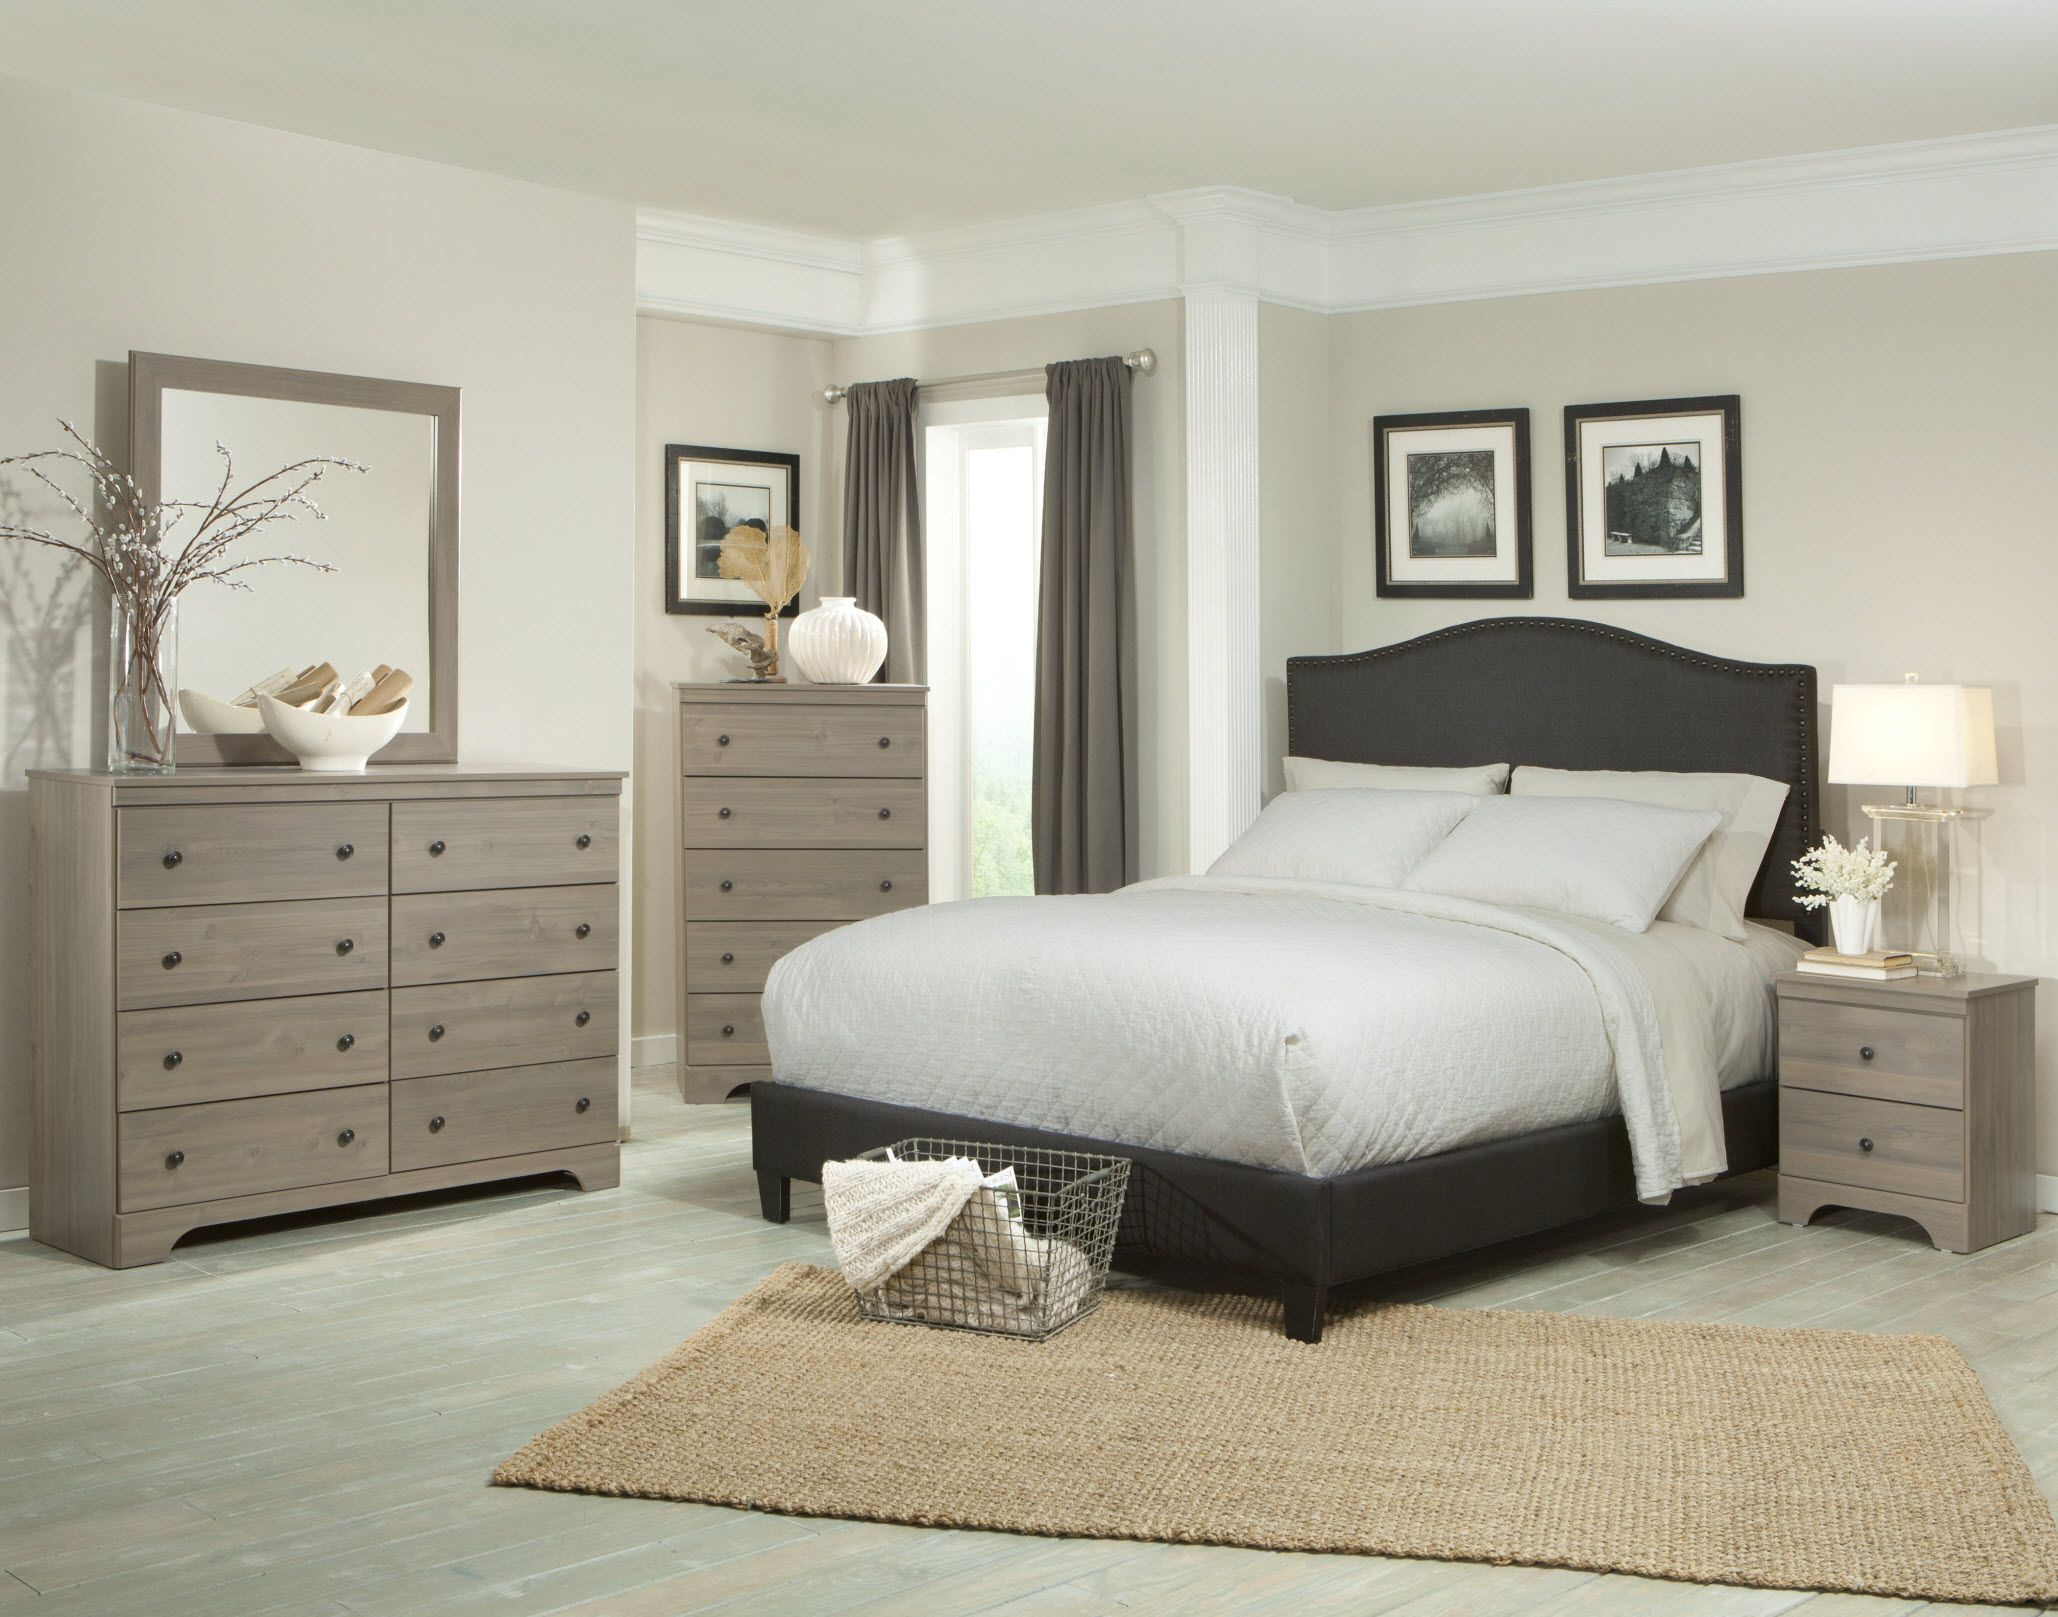 simple transitional bedroom furniture harden for a with